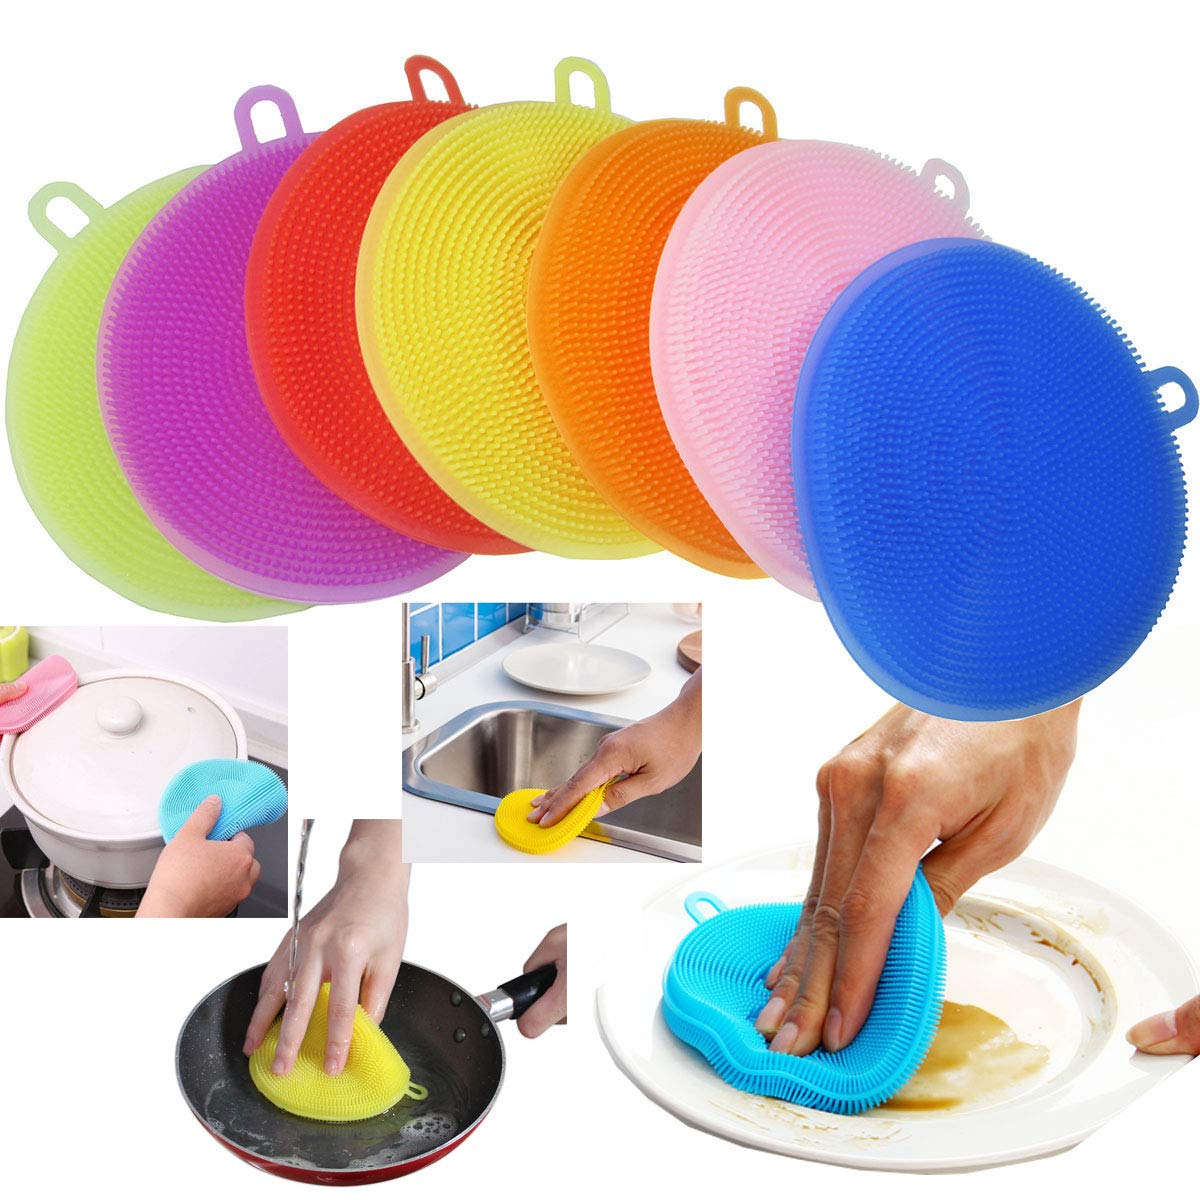 AUSAYE Silicone Sponge (7 Pack) Dish Washing Scrubber Non Stick Cleaning Sponge Food-Grade Better Sponge Dishwasher-Safe Dish Brush Kitchen Scrubber